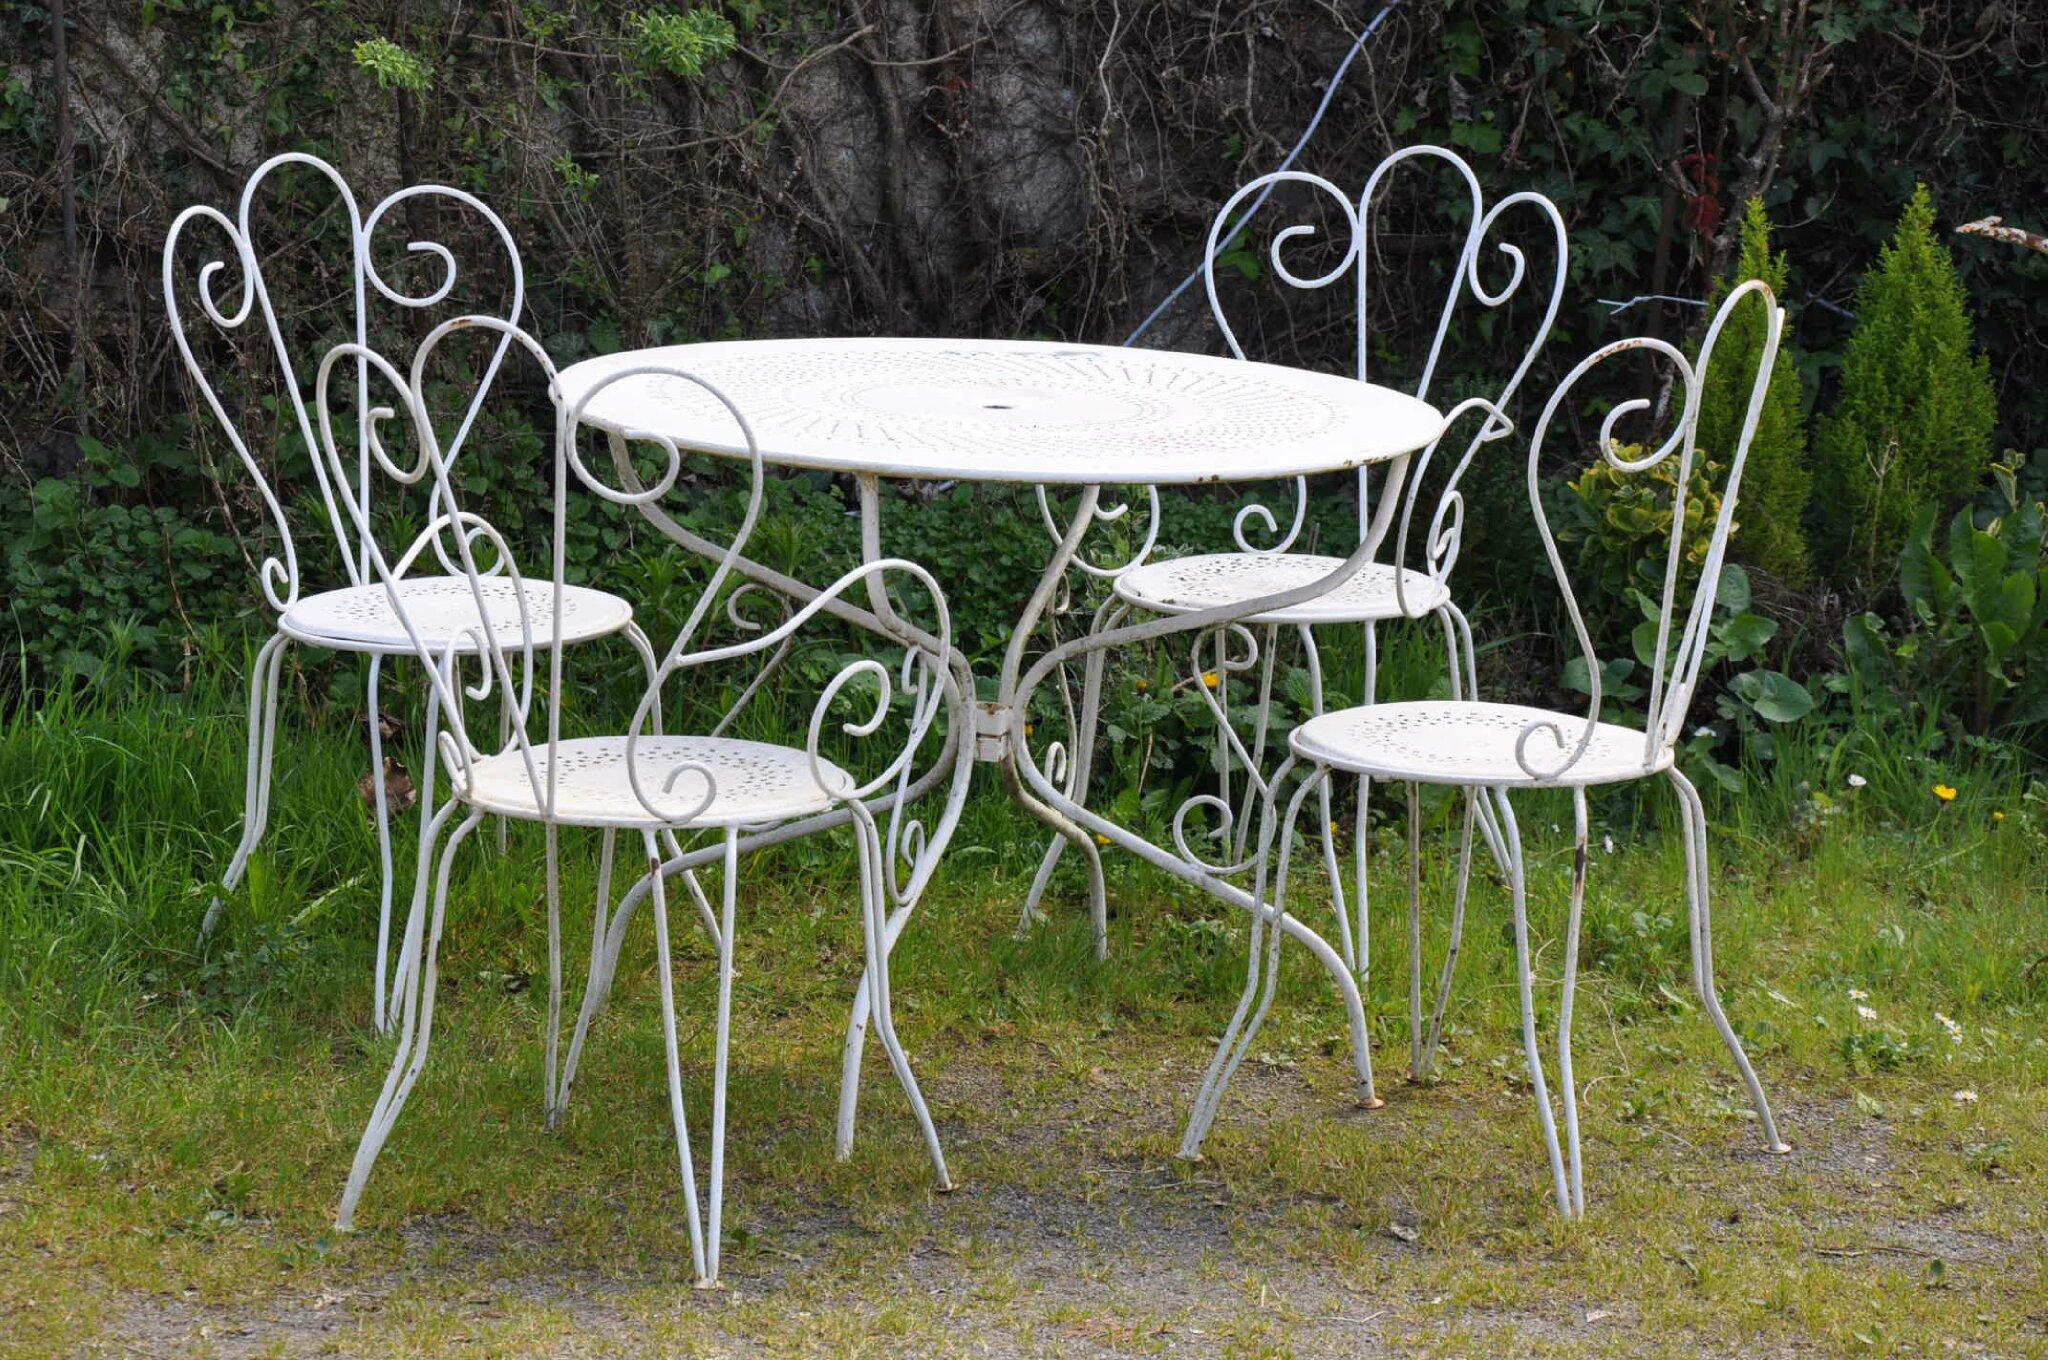 Salon de jardin table ronde fer forge - Salon jardin fer forge pas cher ...